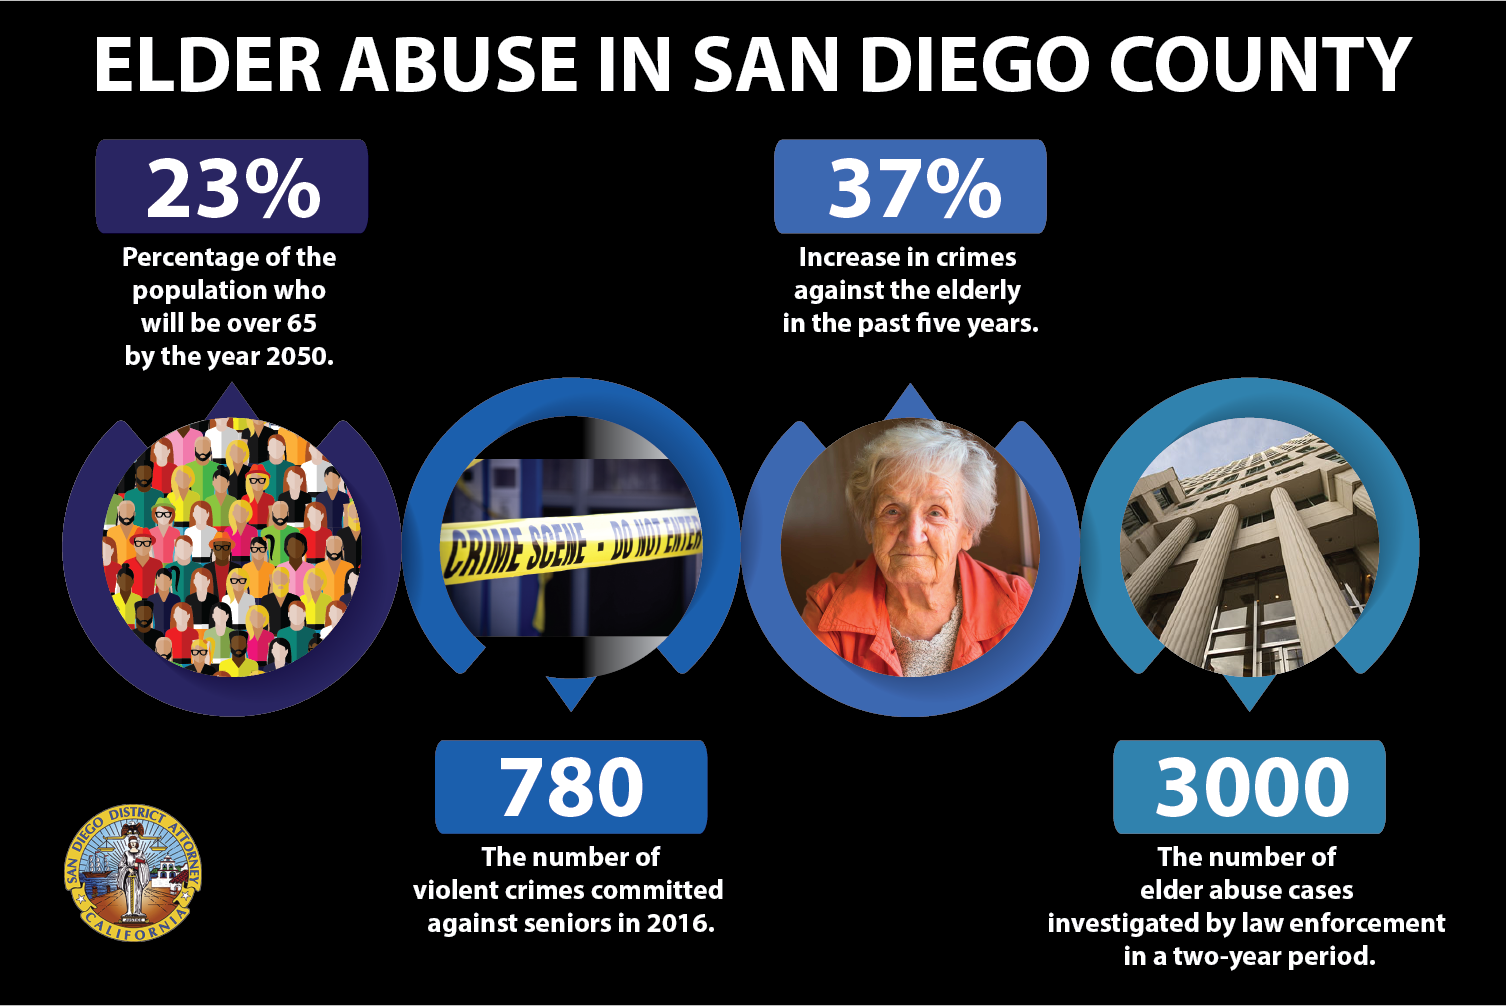 ELDER ABUSE IN SAN DIEGO COUNTY